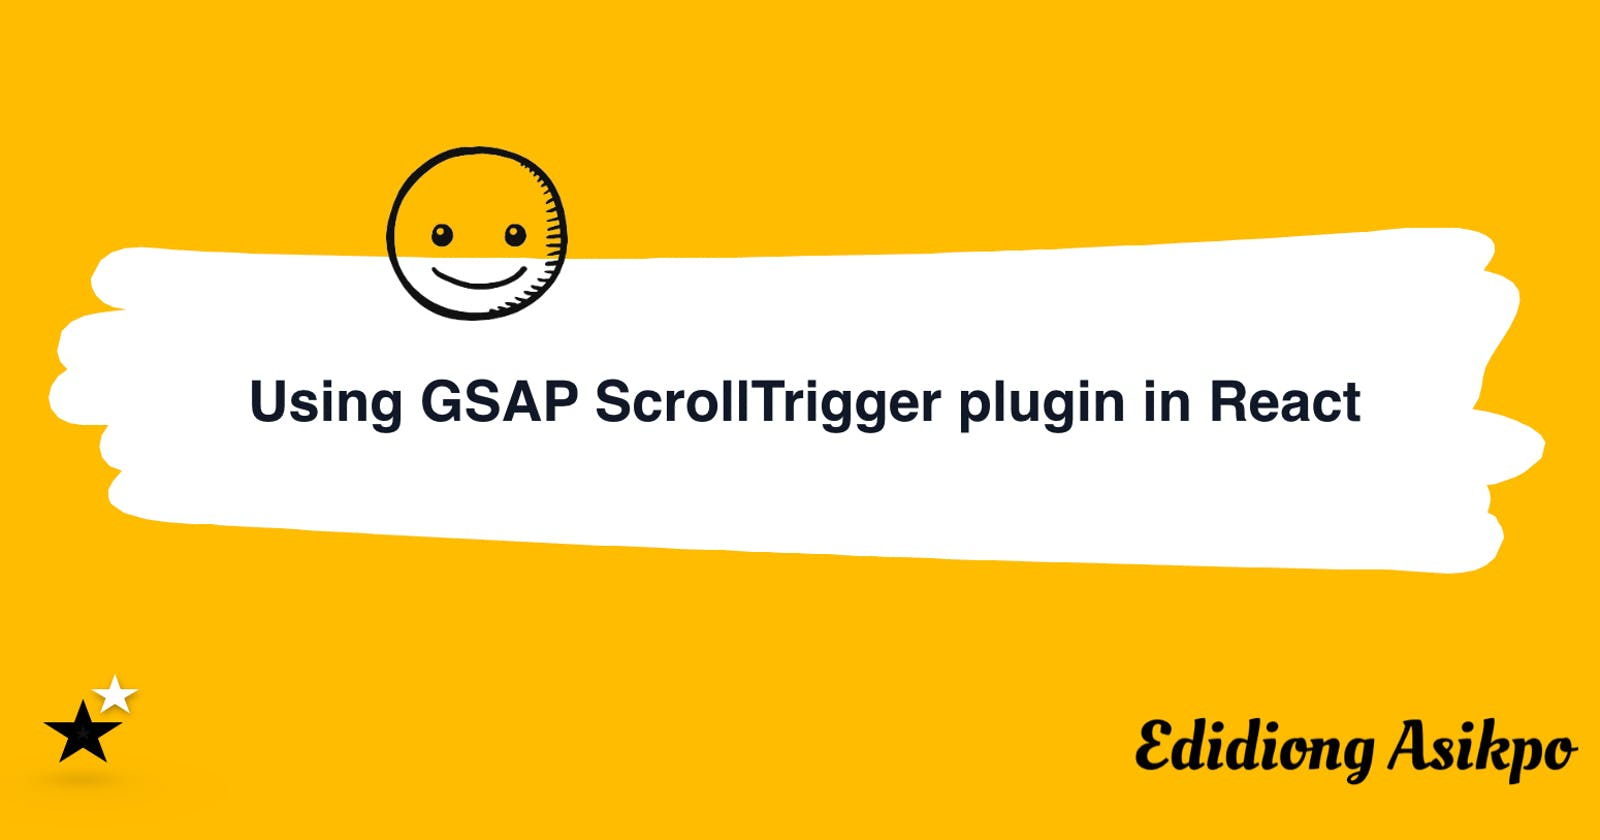 How to use the GSAP ScrollTrigger plugin in React